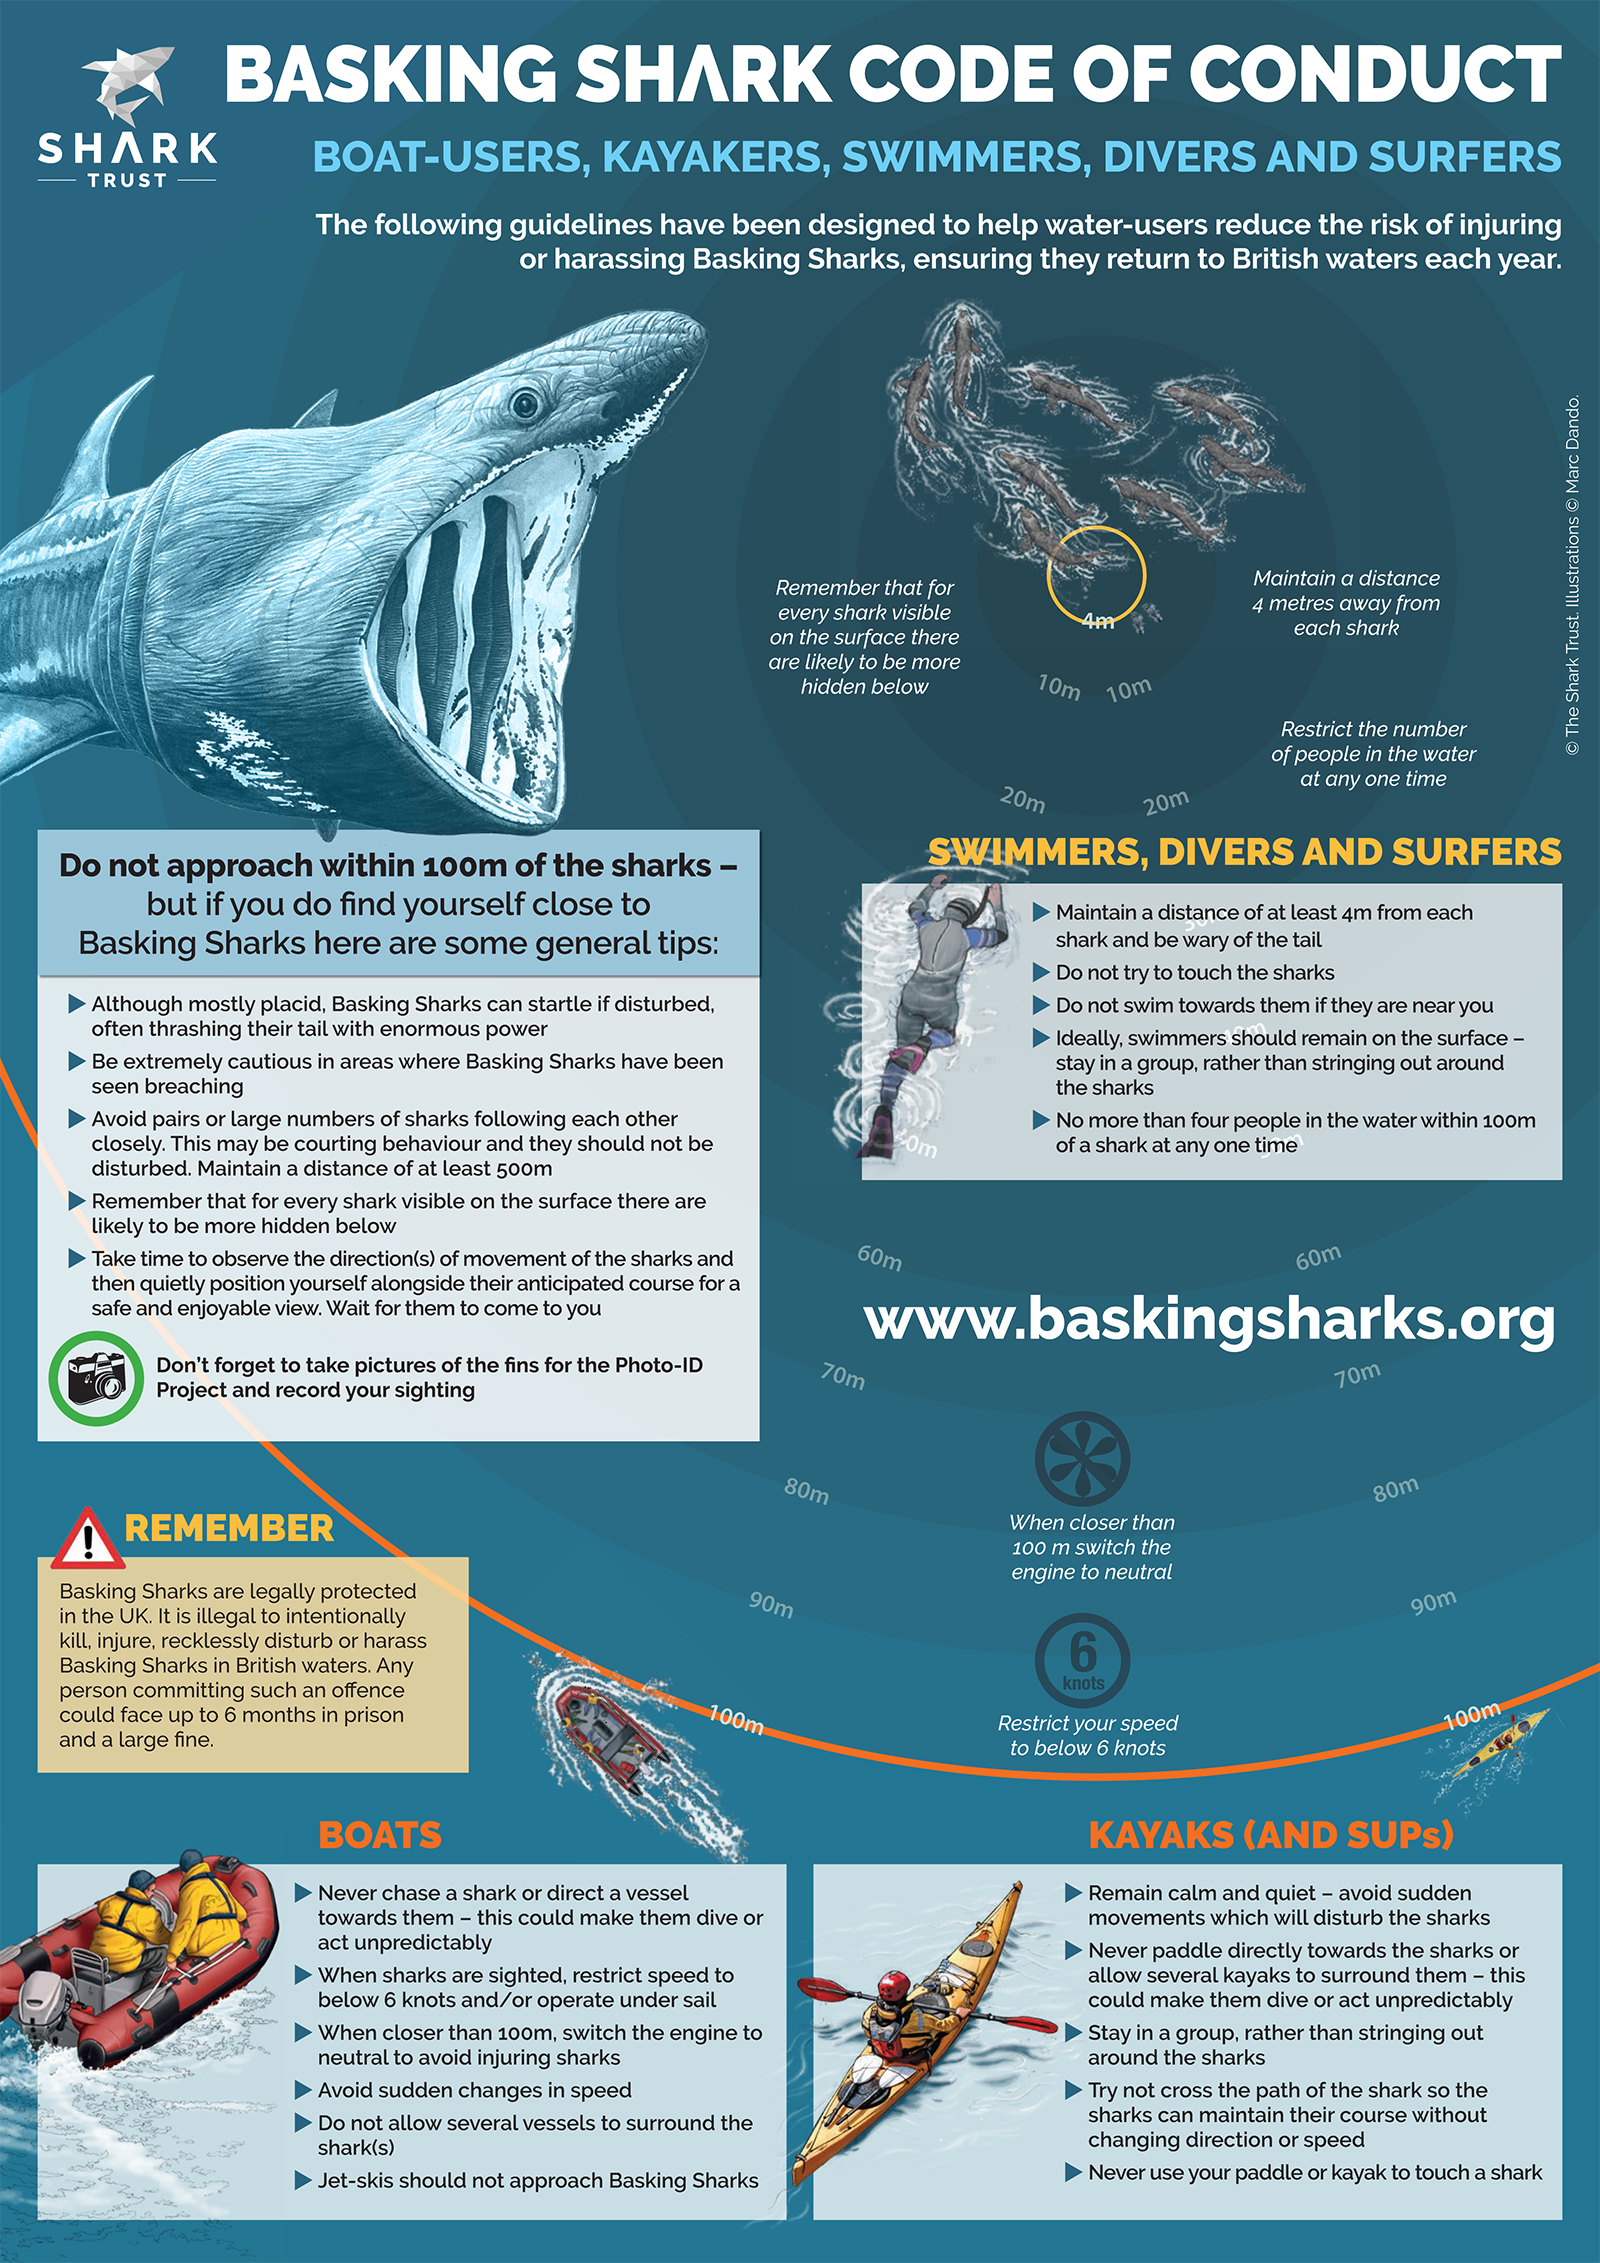 Basking Shark Code of Conduct